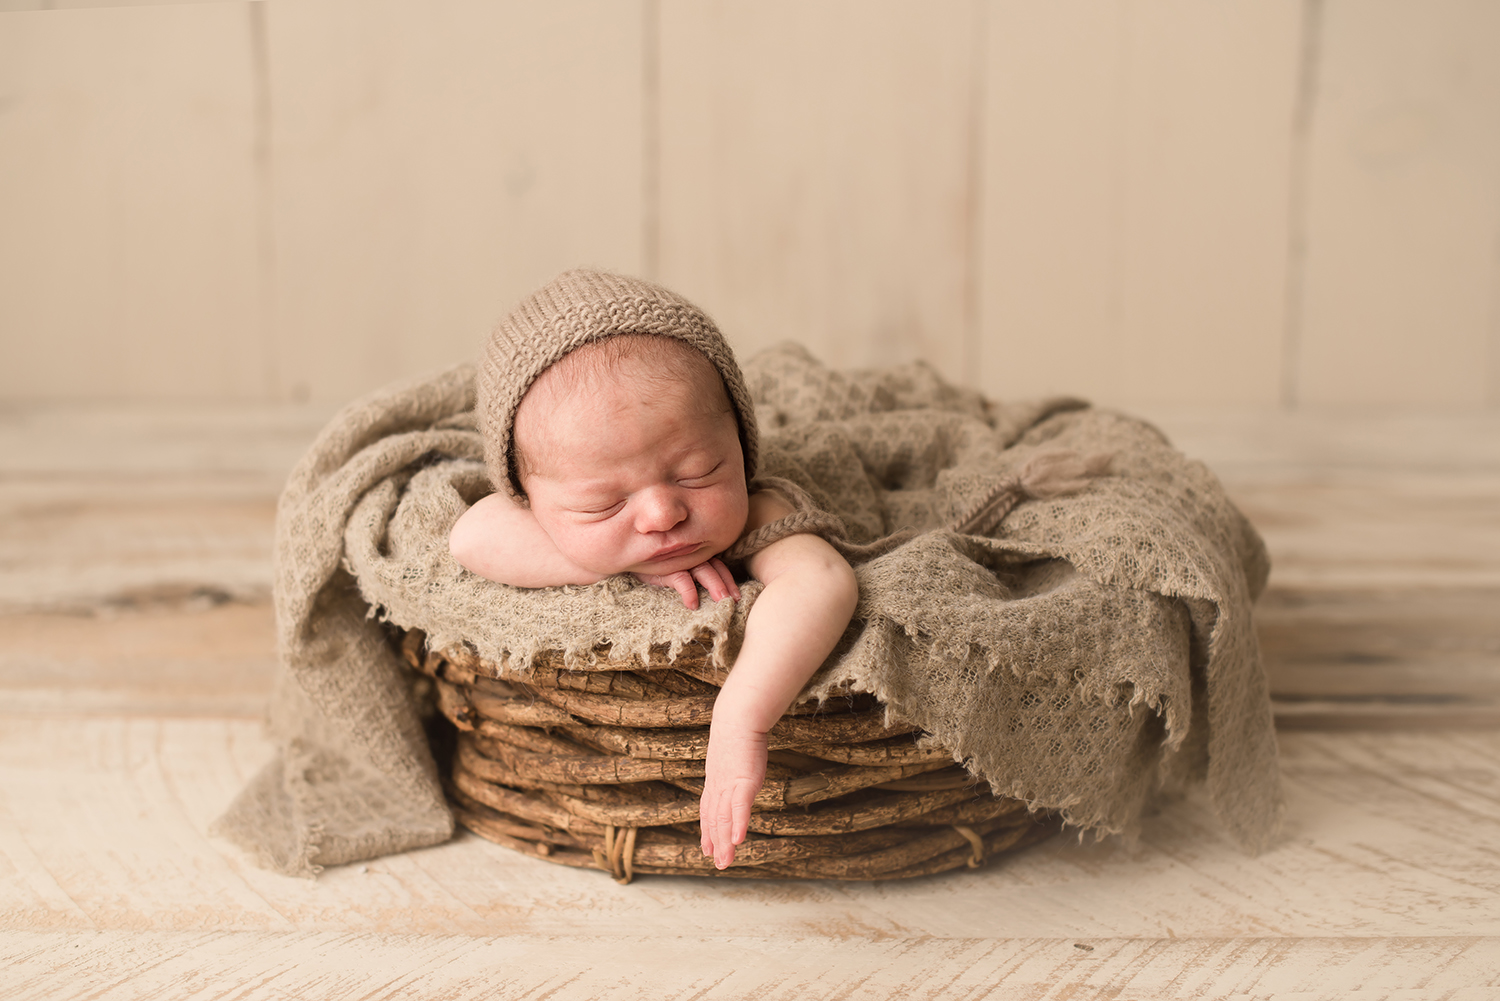 columbus-ohio-newborn-photographer-bare-baby-photography.jpg